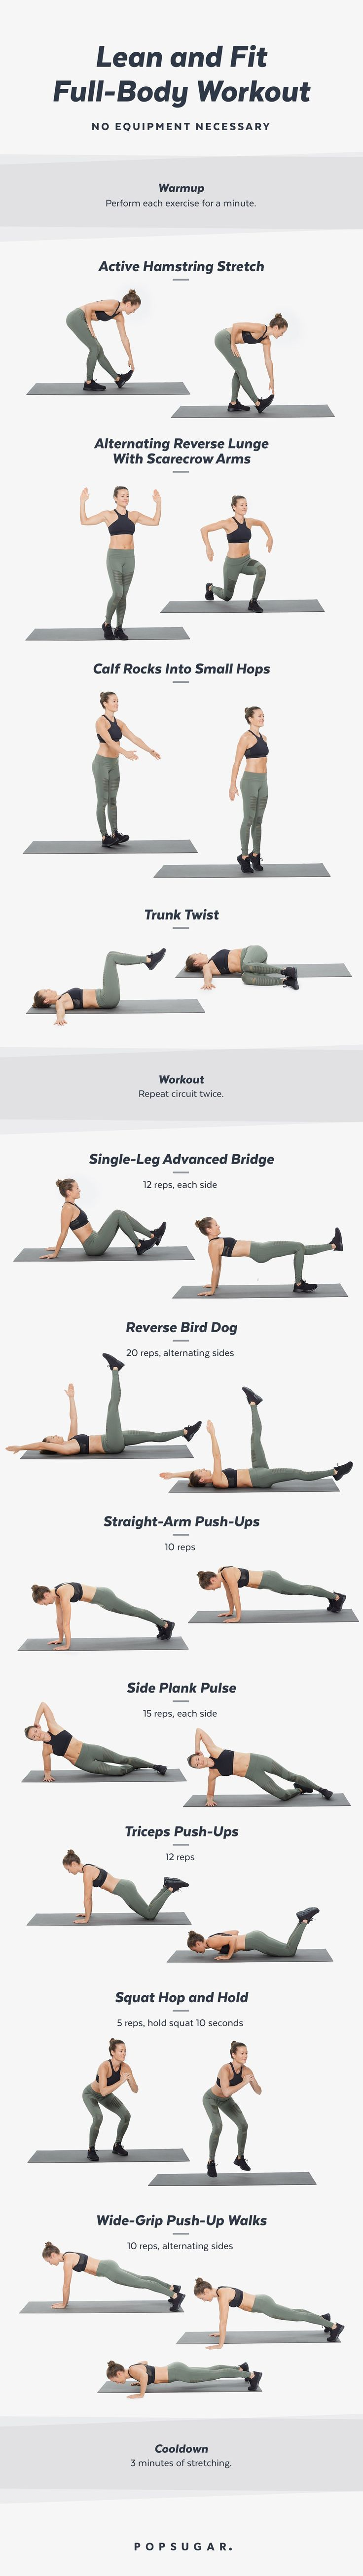 20-Minute Bodyweight Workout Video POPSUGAR Fitness